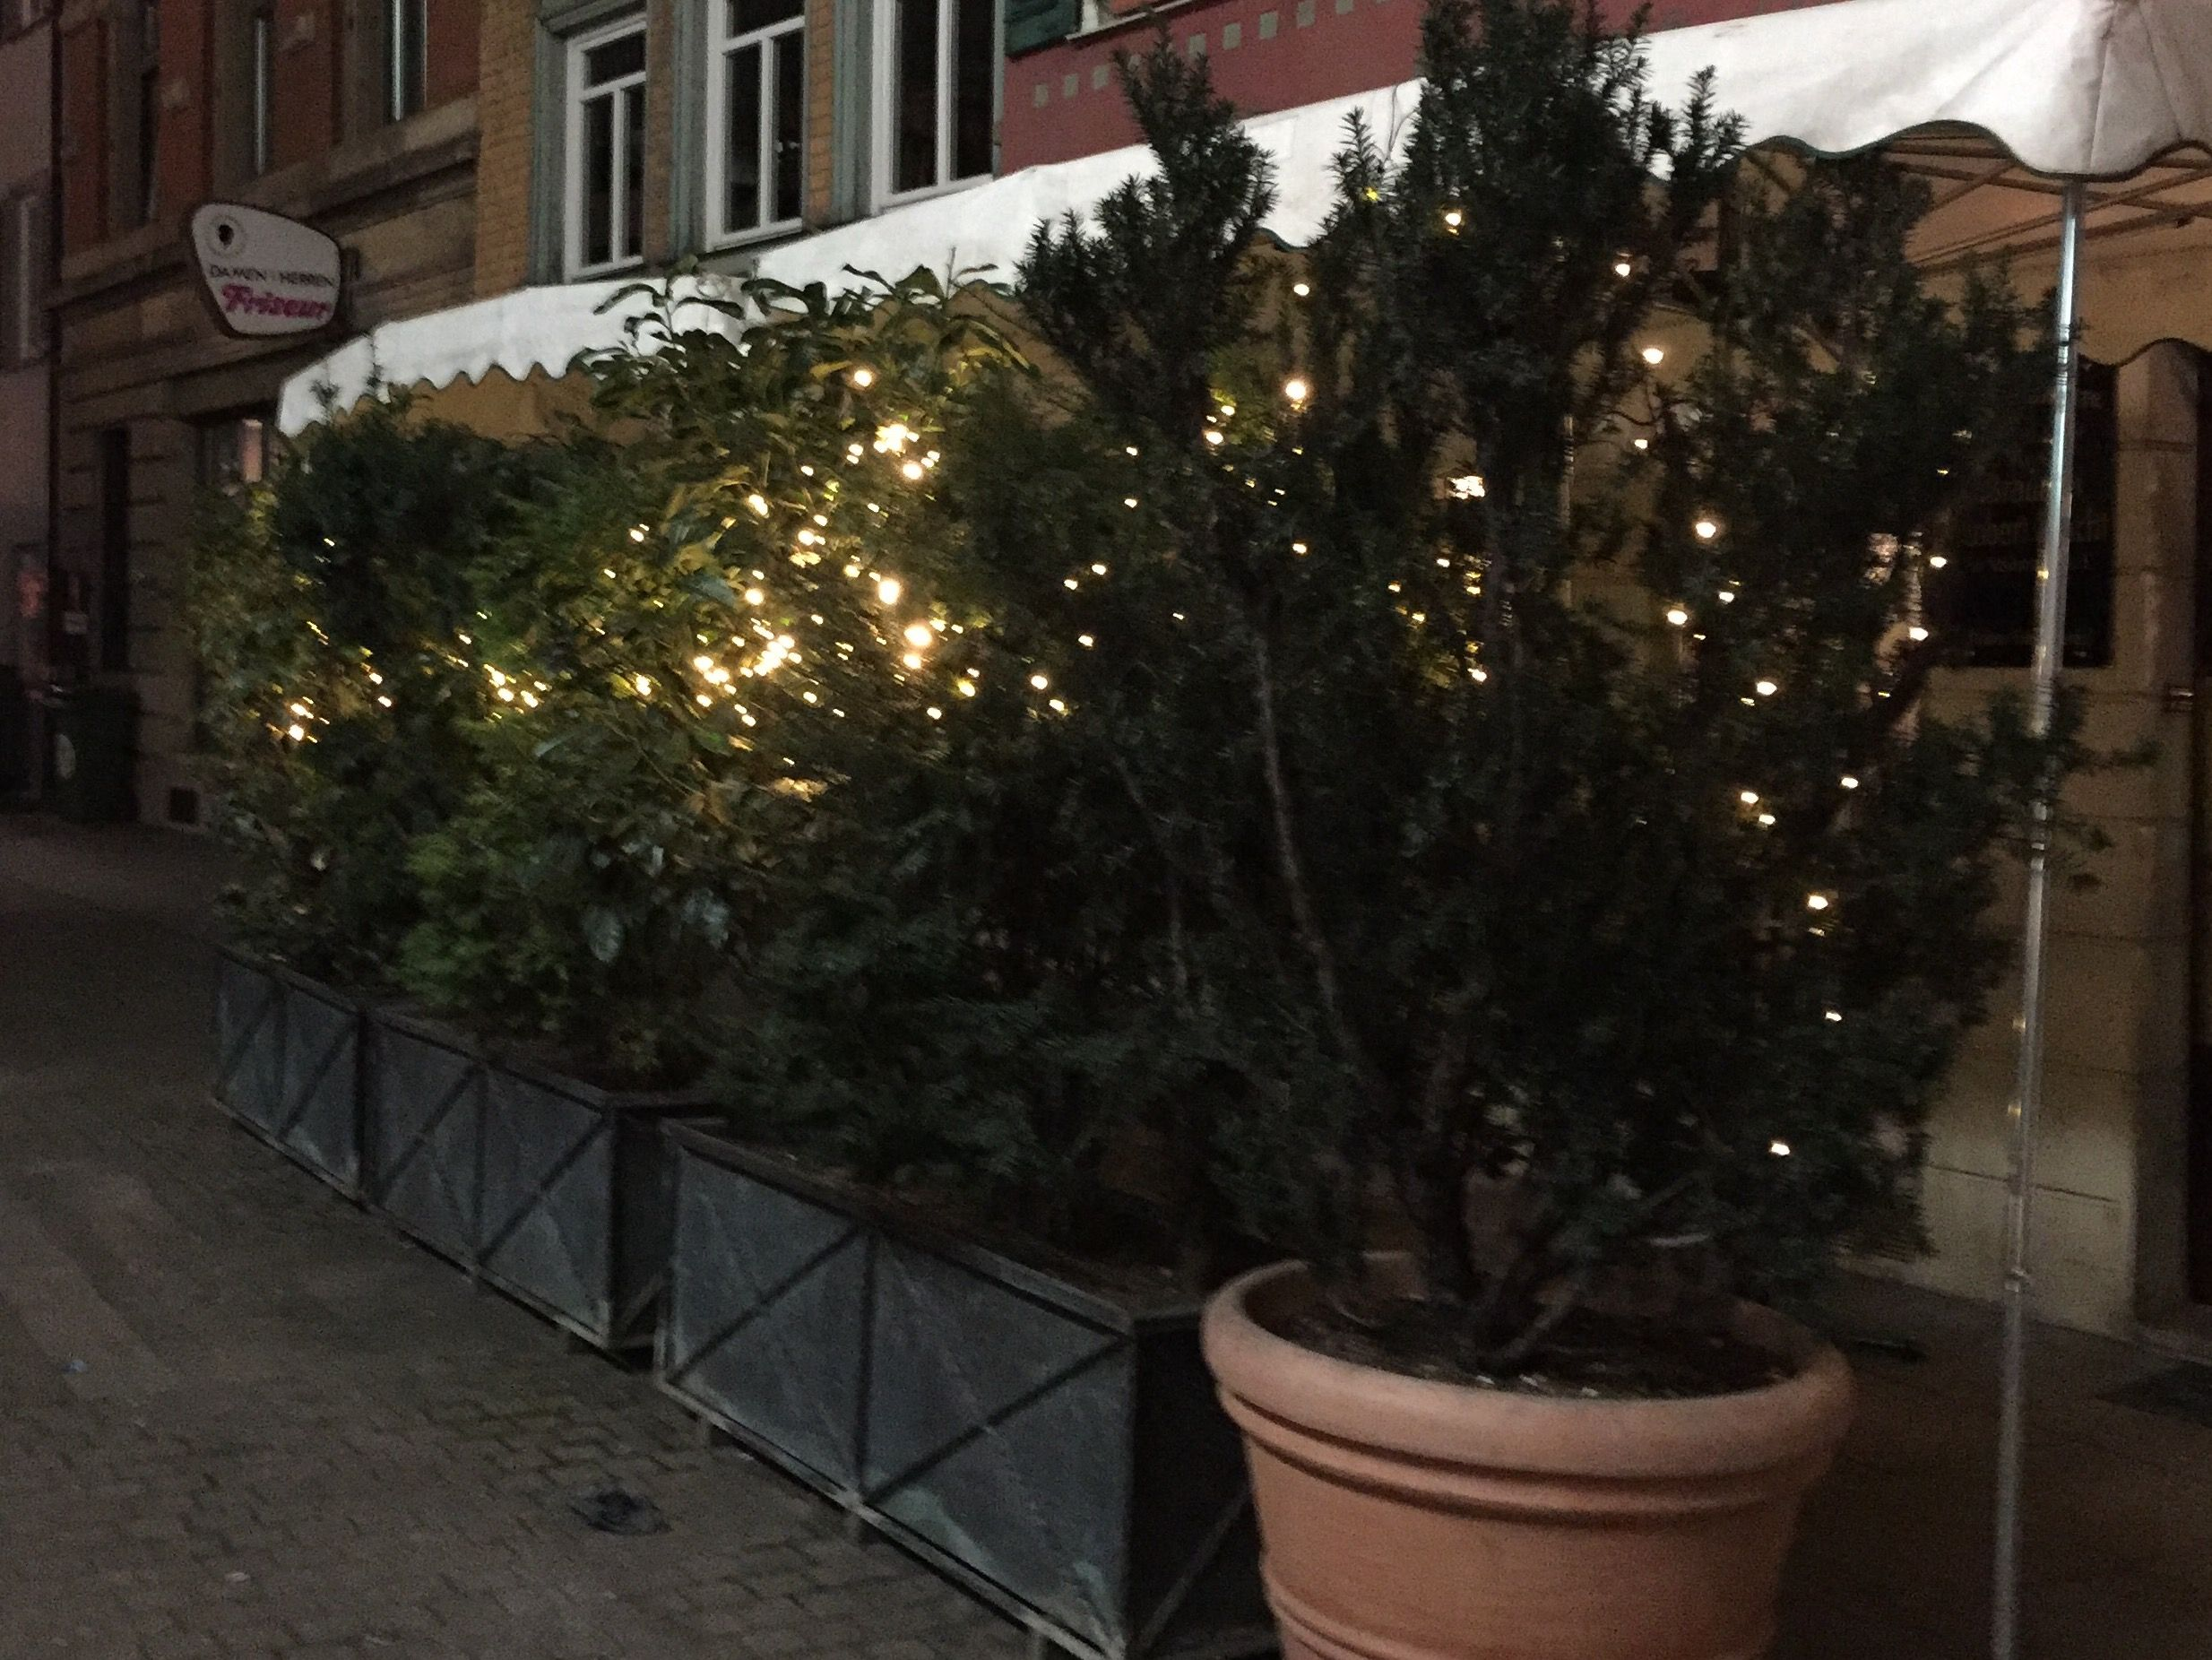 Need big bushes or trees with fairy lights in the garden